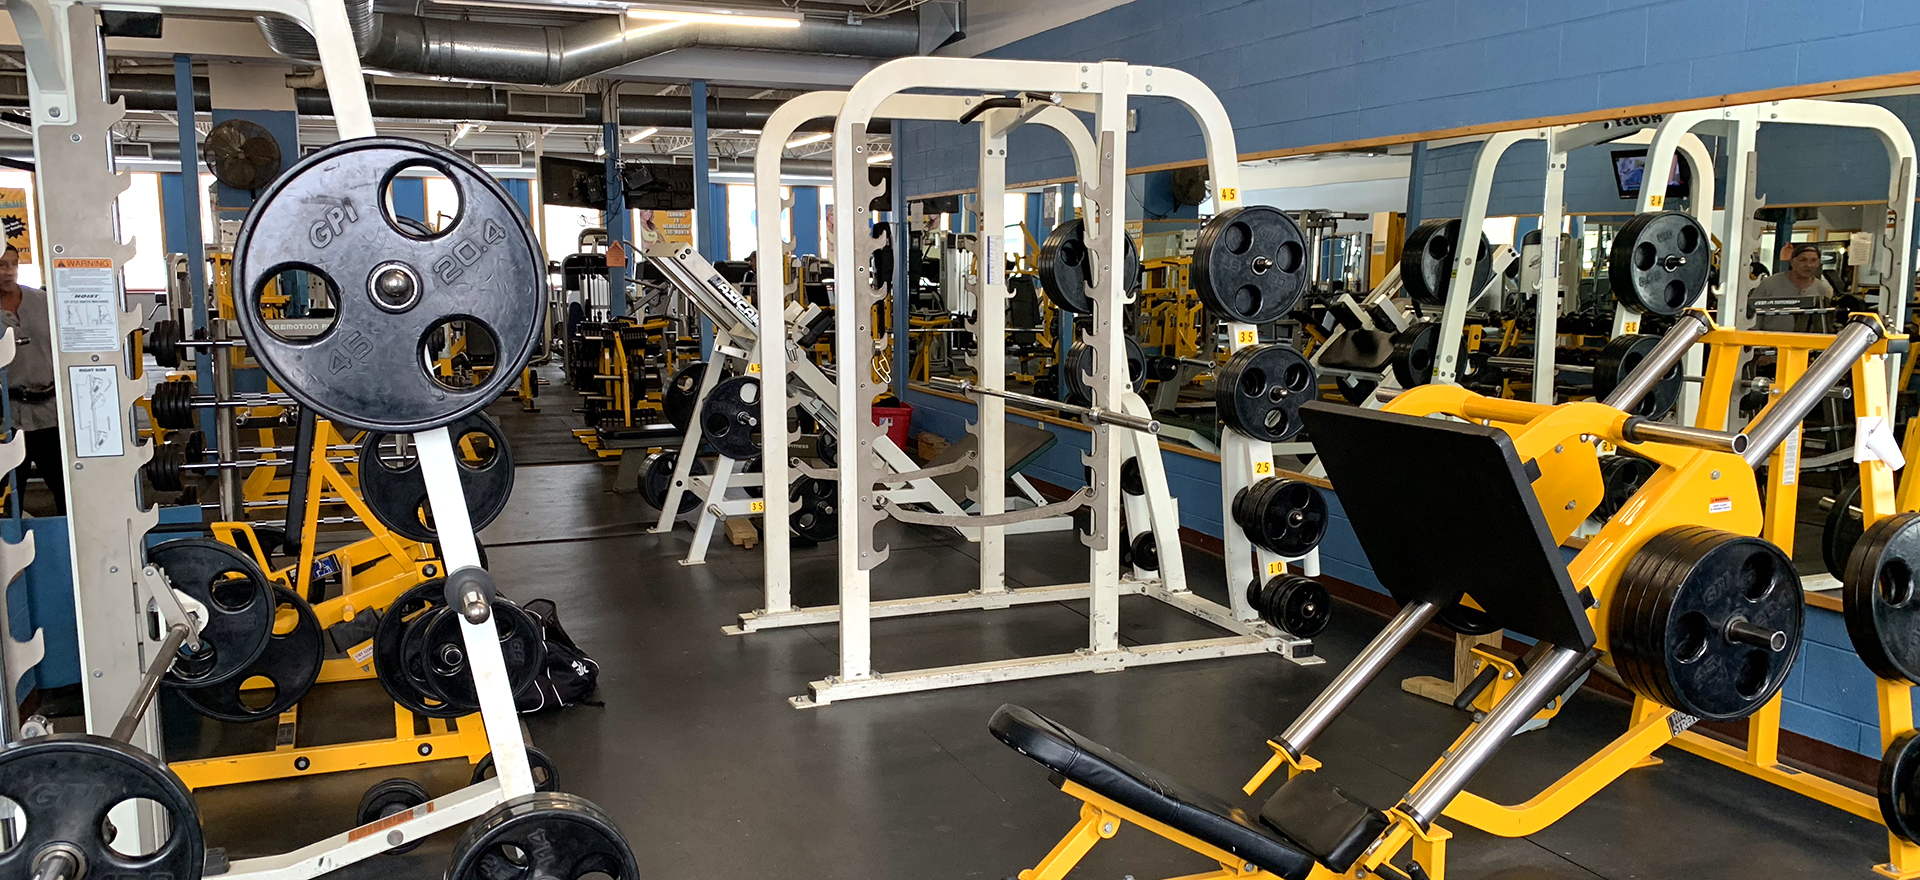 Family fitness of north muskegon amenities facilities & services